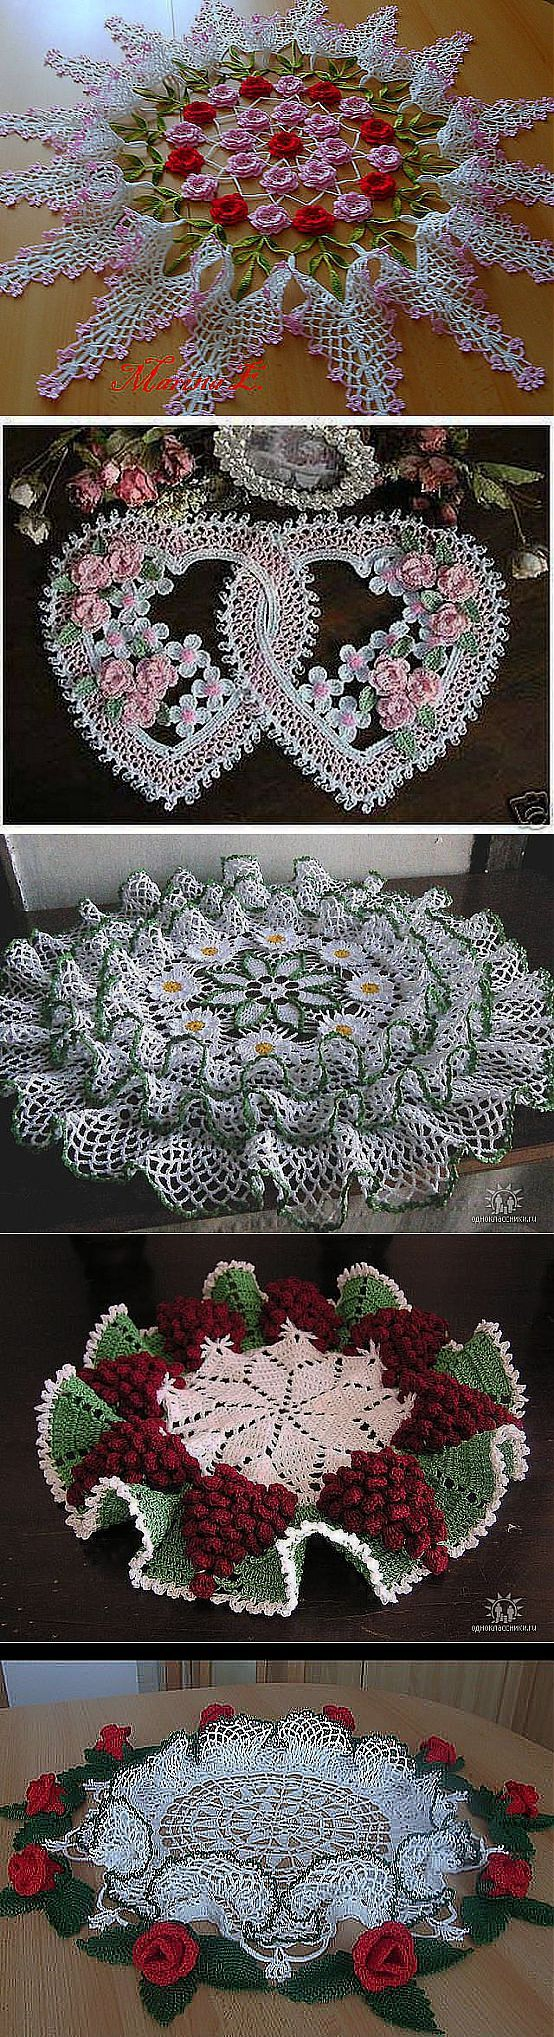 liveinternet.ru. My grandmother used to make these beautiful doilies.